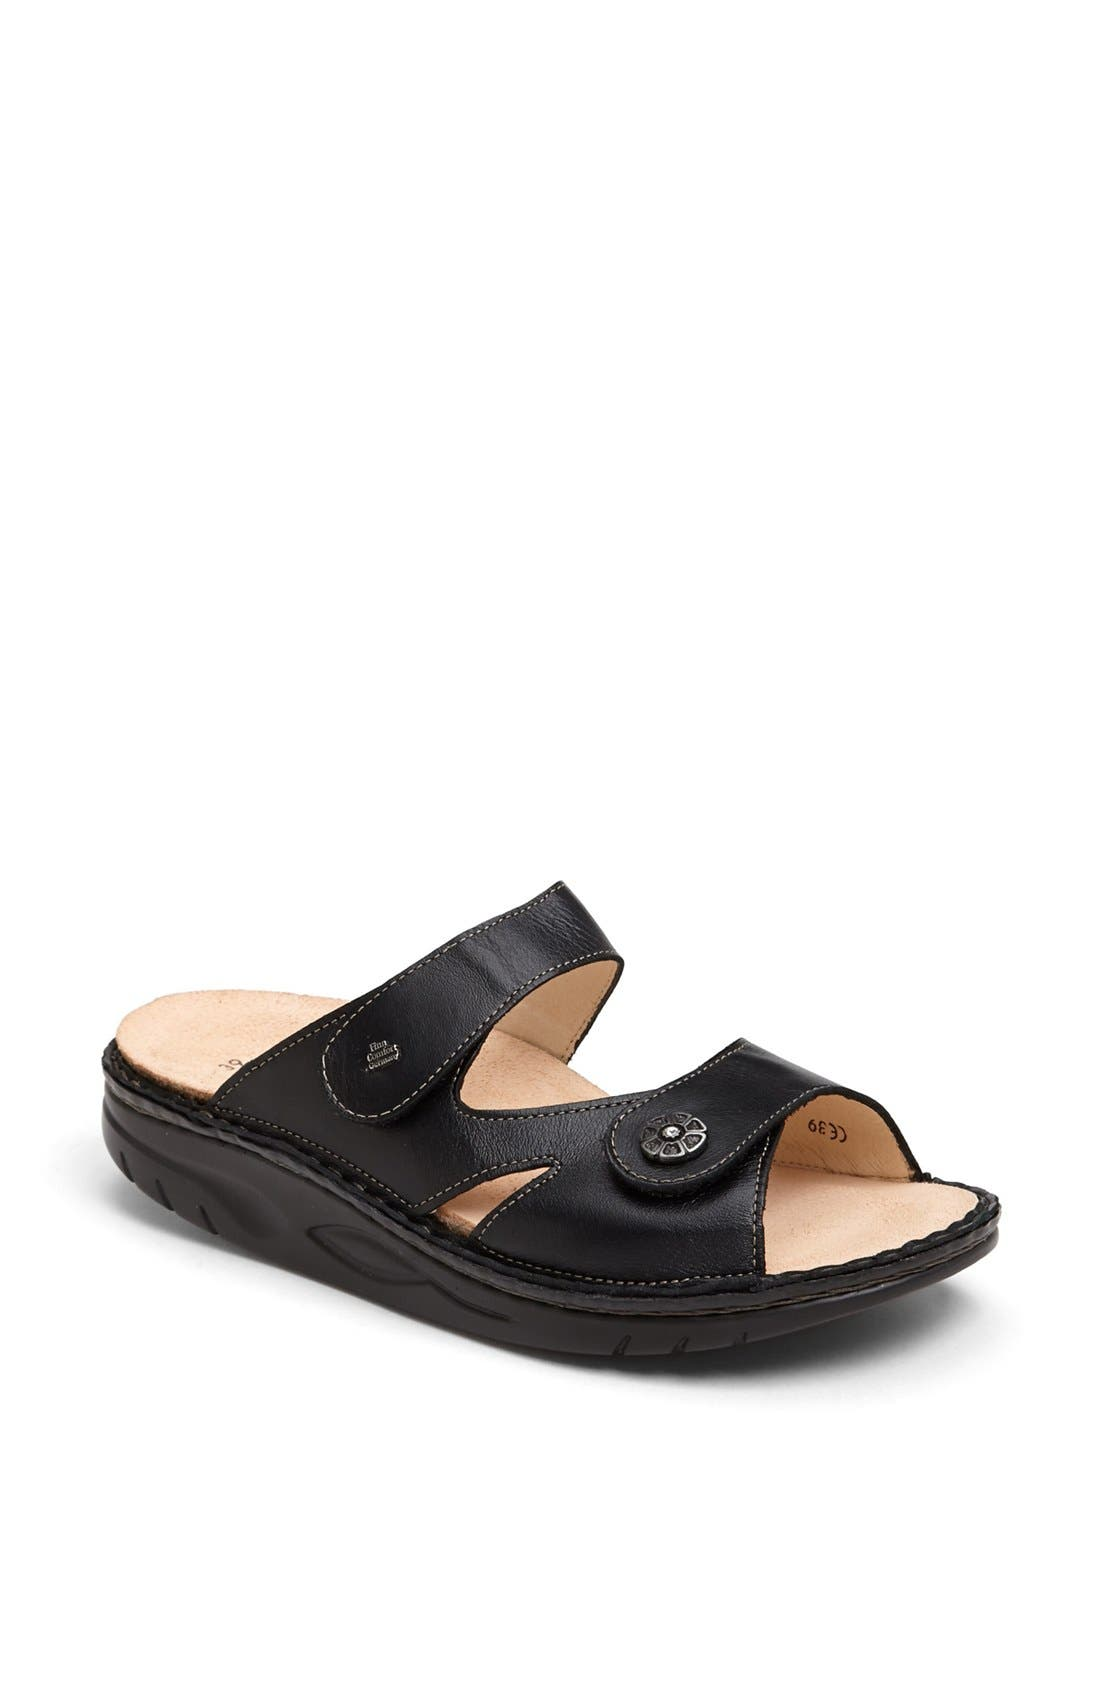 FINNAMIC by Finn Comfort 'Sanaa' Walking Sandal